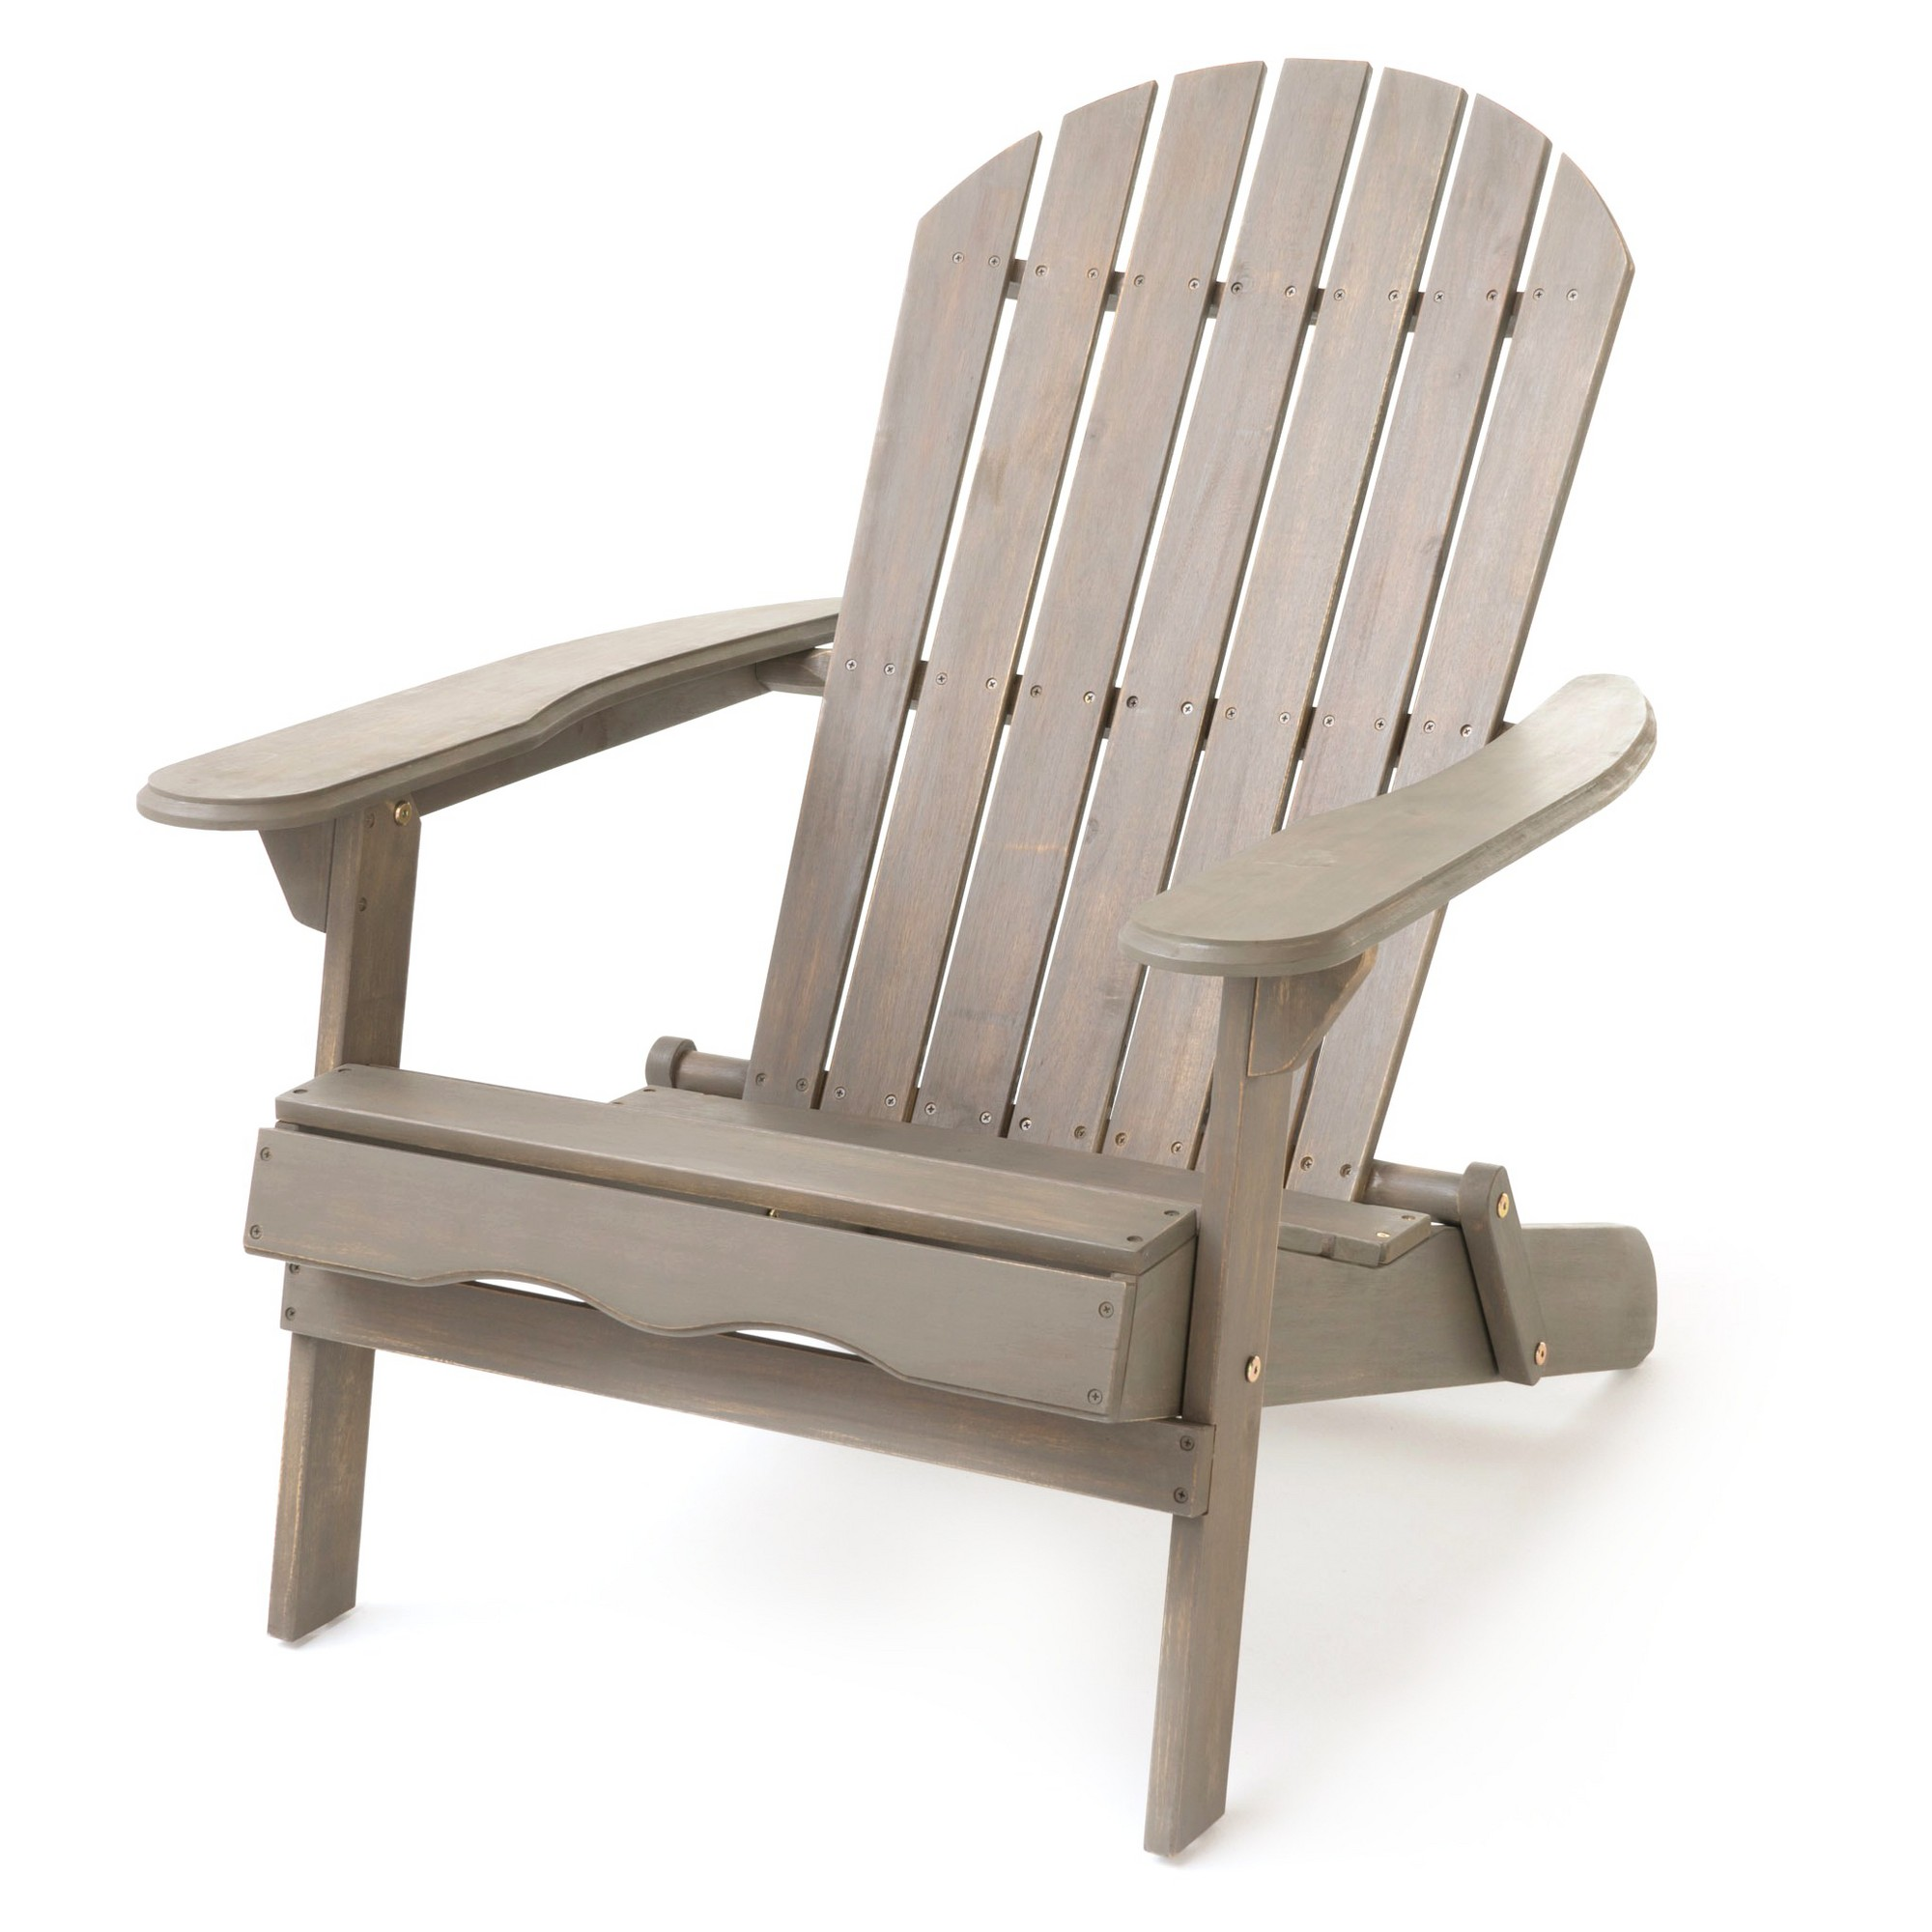 Remarkable Hanlee Folding Wood Adirondack Chair Gray Finish Gamerscity Chair Design For Home Gamerscityorg